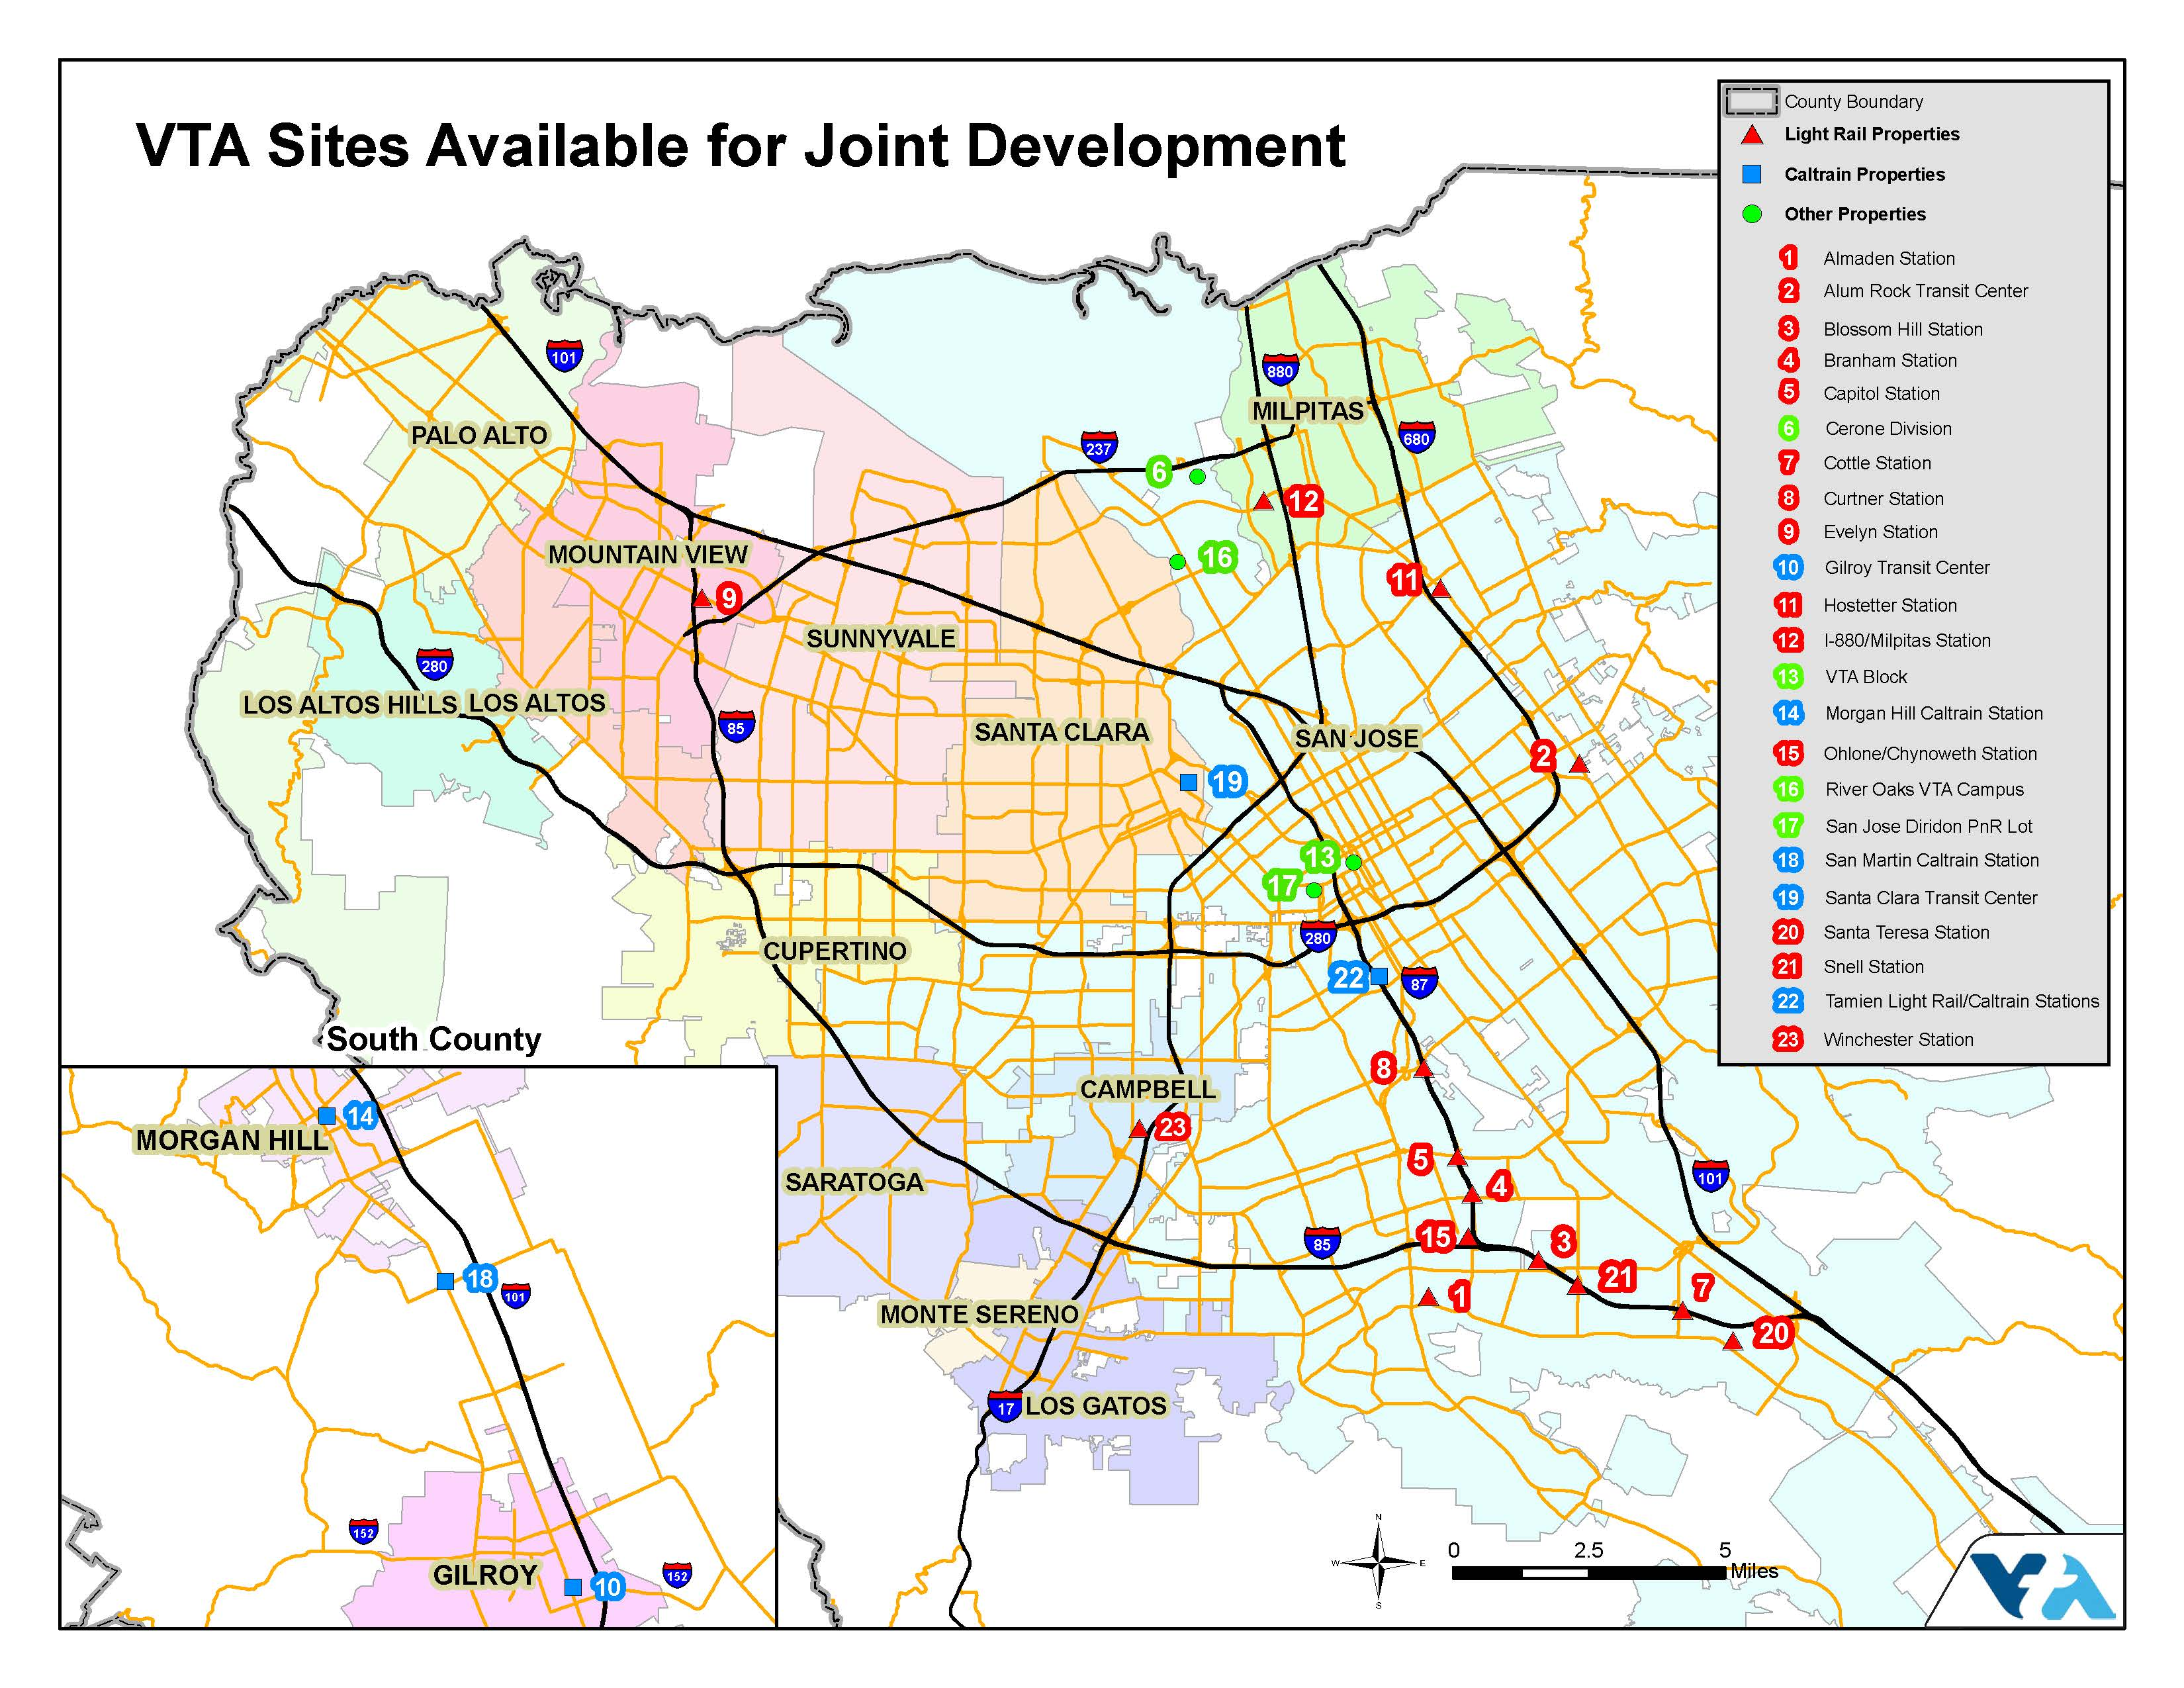 Map of all properties in santa clara county available for joint developement with vta